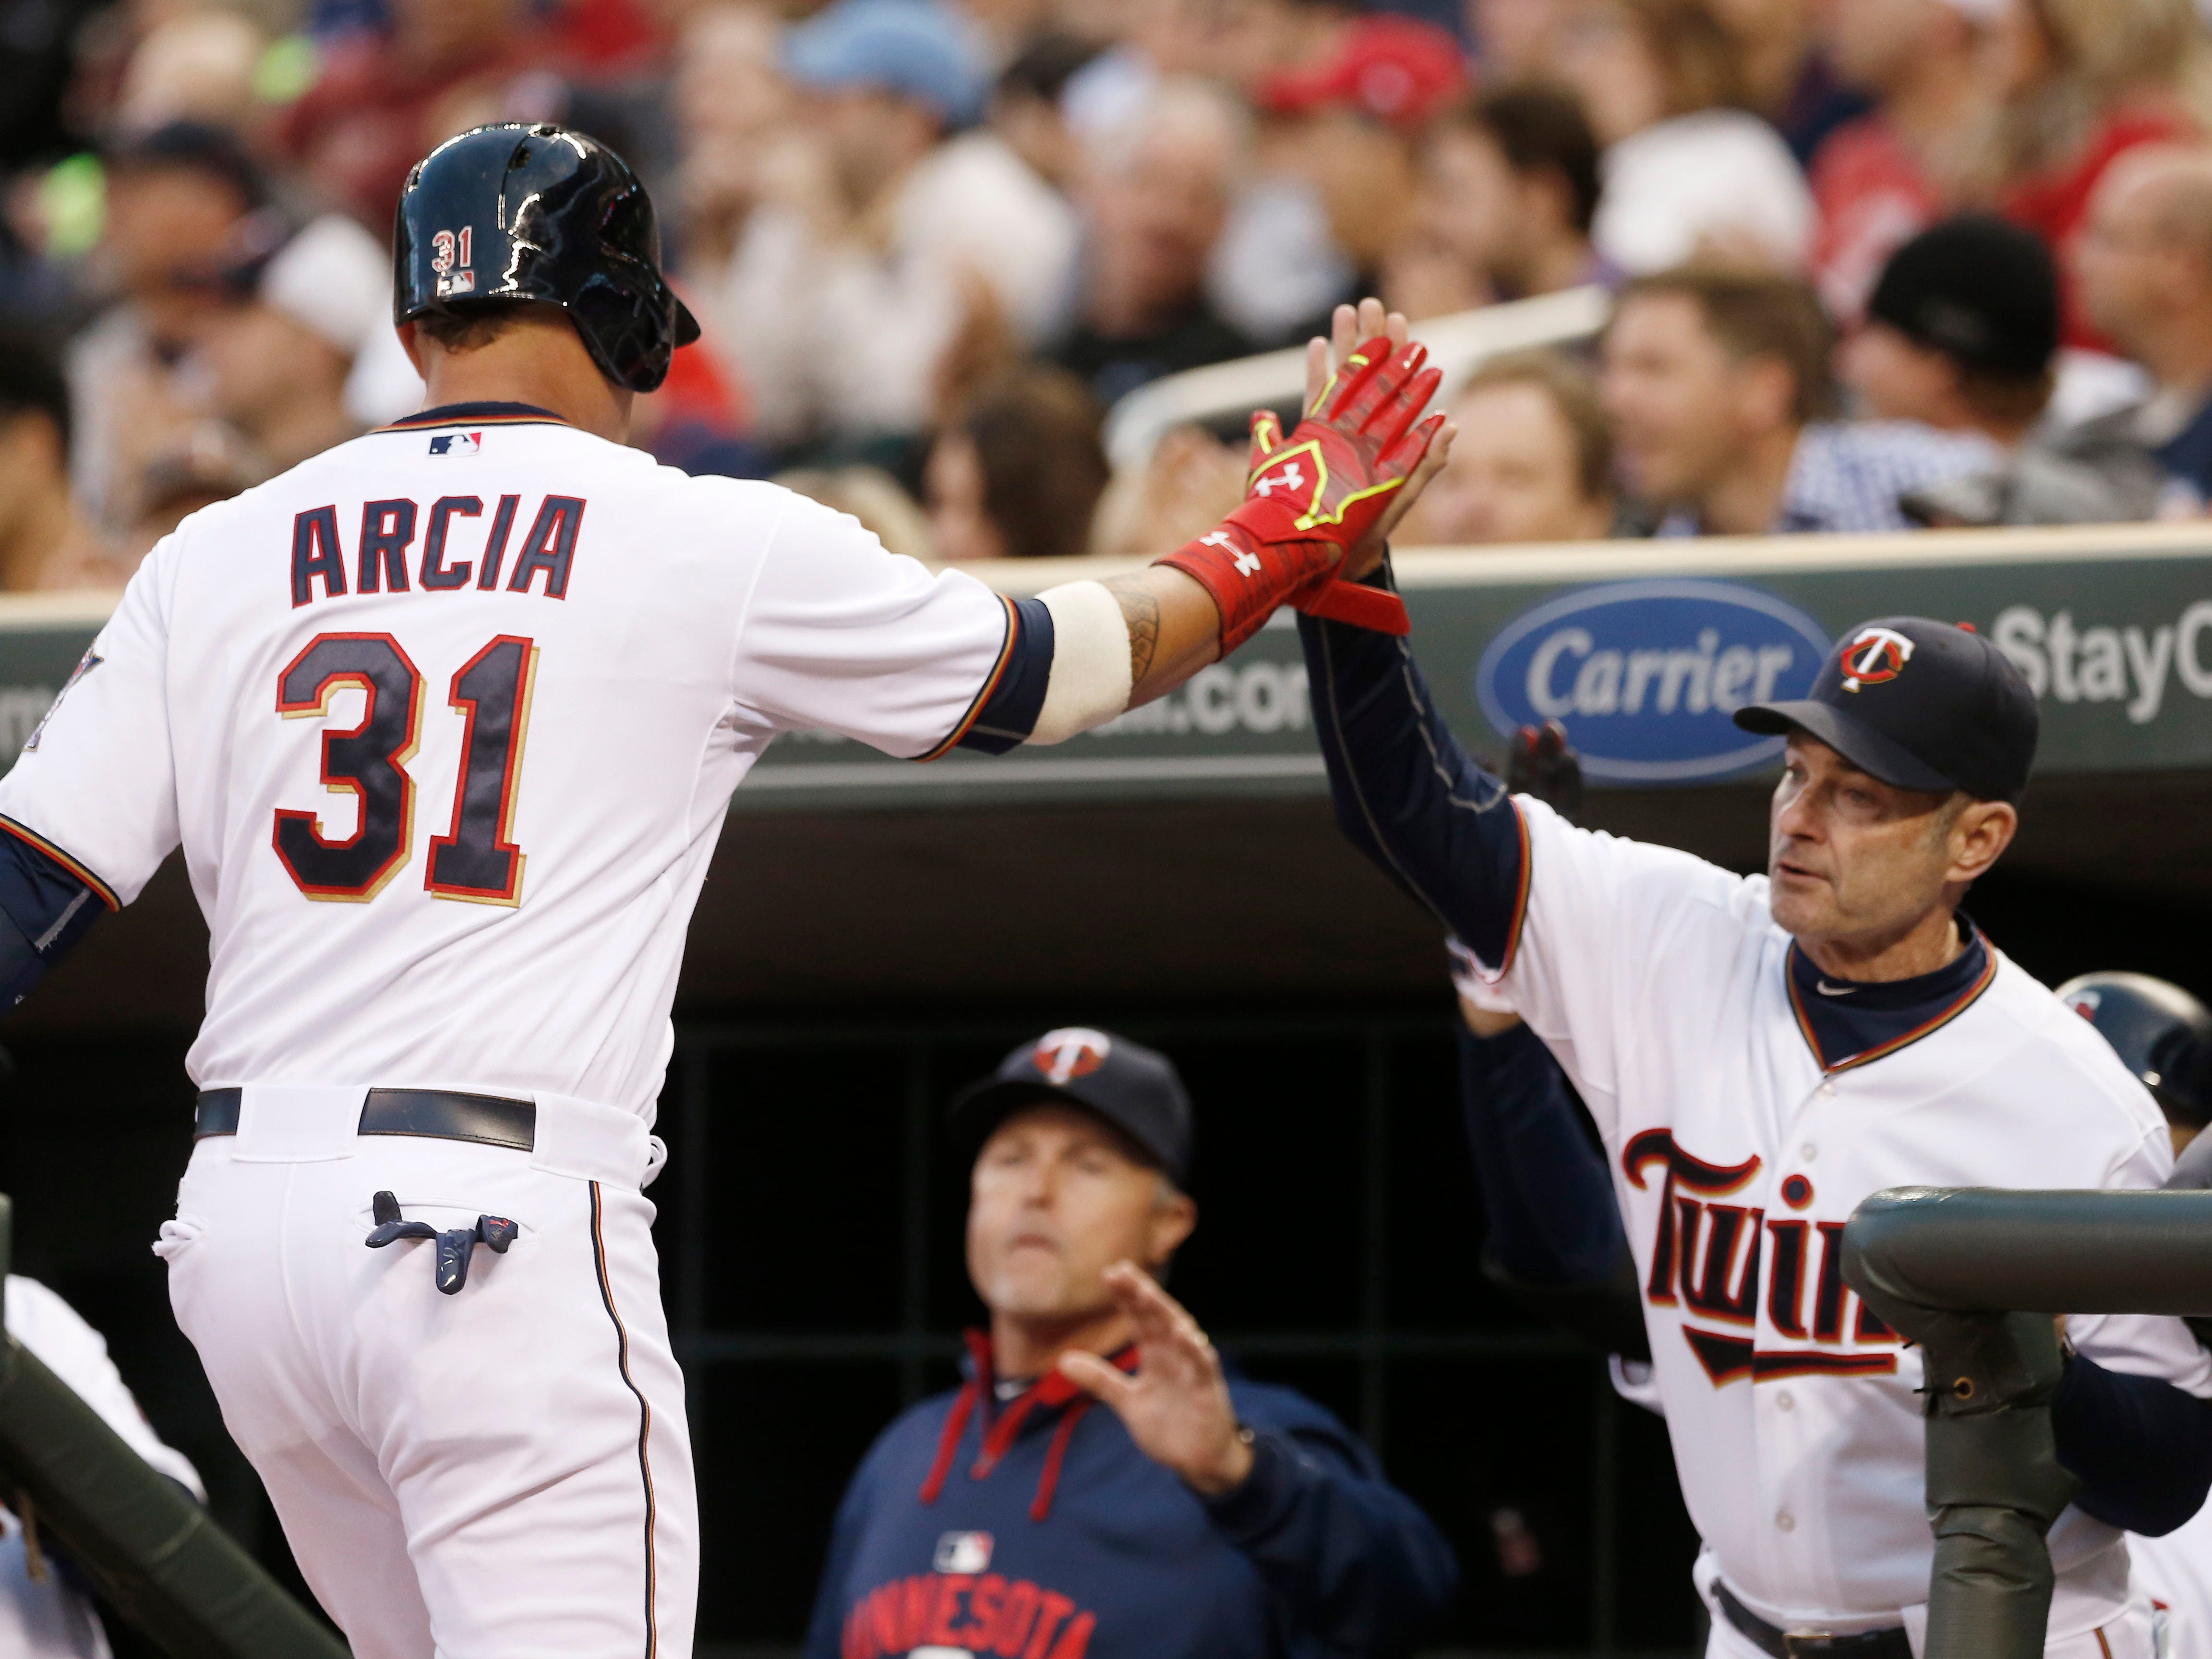 Minnesota Twins manager Paul Molitor, right, congratulates Oswaldo Arcia as he scores on a single by Danny Santana off Detroit Tigers starting pitcher Anibal Sanchez in the third inning of a baseball game, Tuesday, April 28, 2015, in Minneapolis. (AP Photo/Jim Mone)